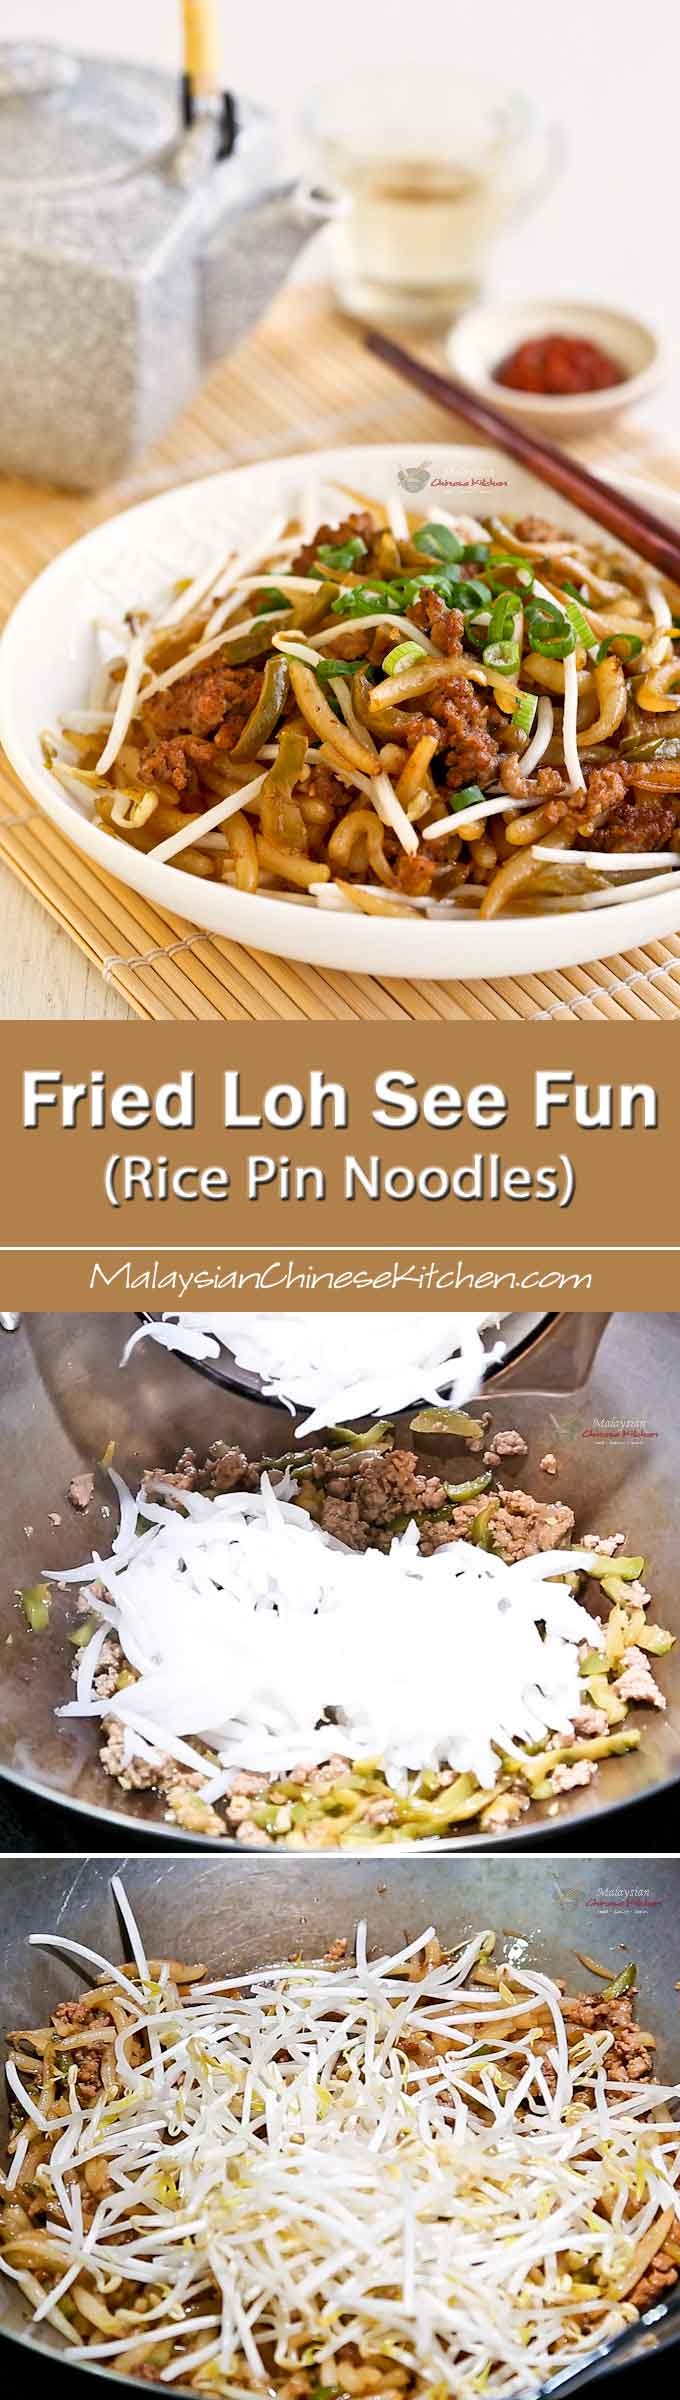 Quick and easy Fried Loh See Fun (Rice Pin Noodles) with minced pork and salted spicy radish. It is perfect for lunch and can be prepared in under 30 minutes. | MalaysianChineseKitchen.com